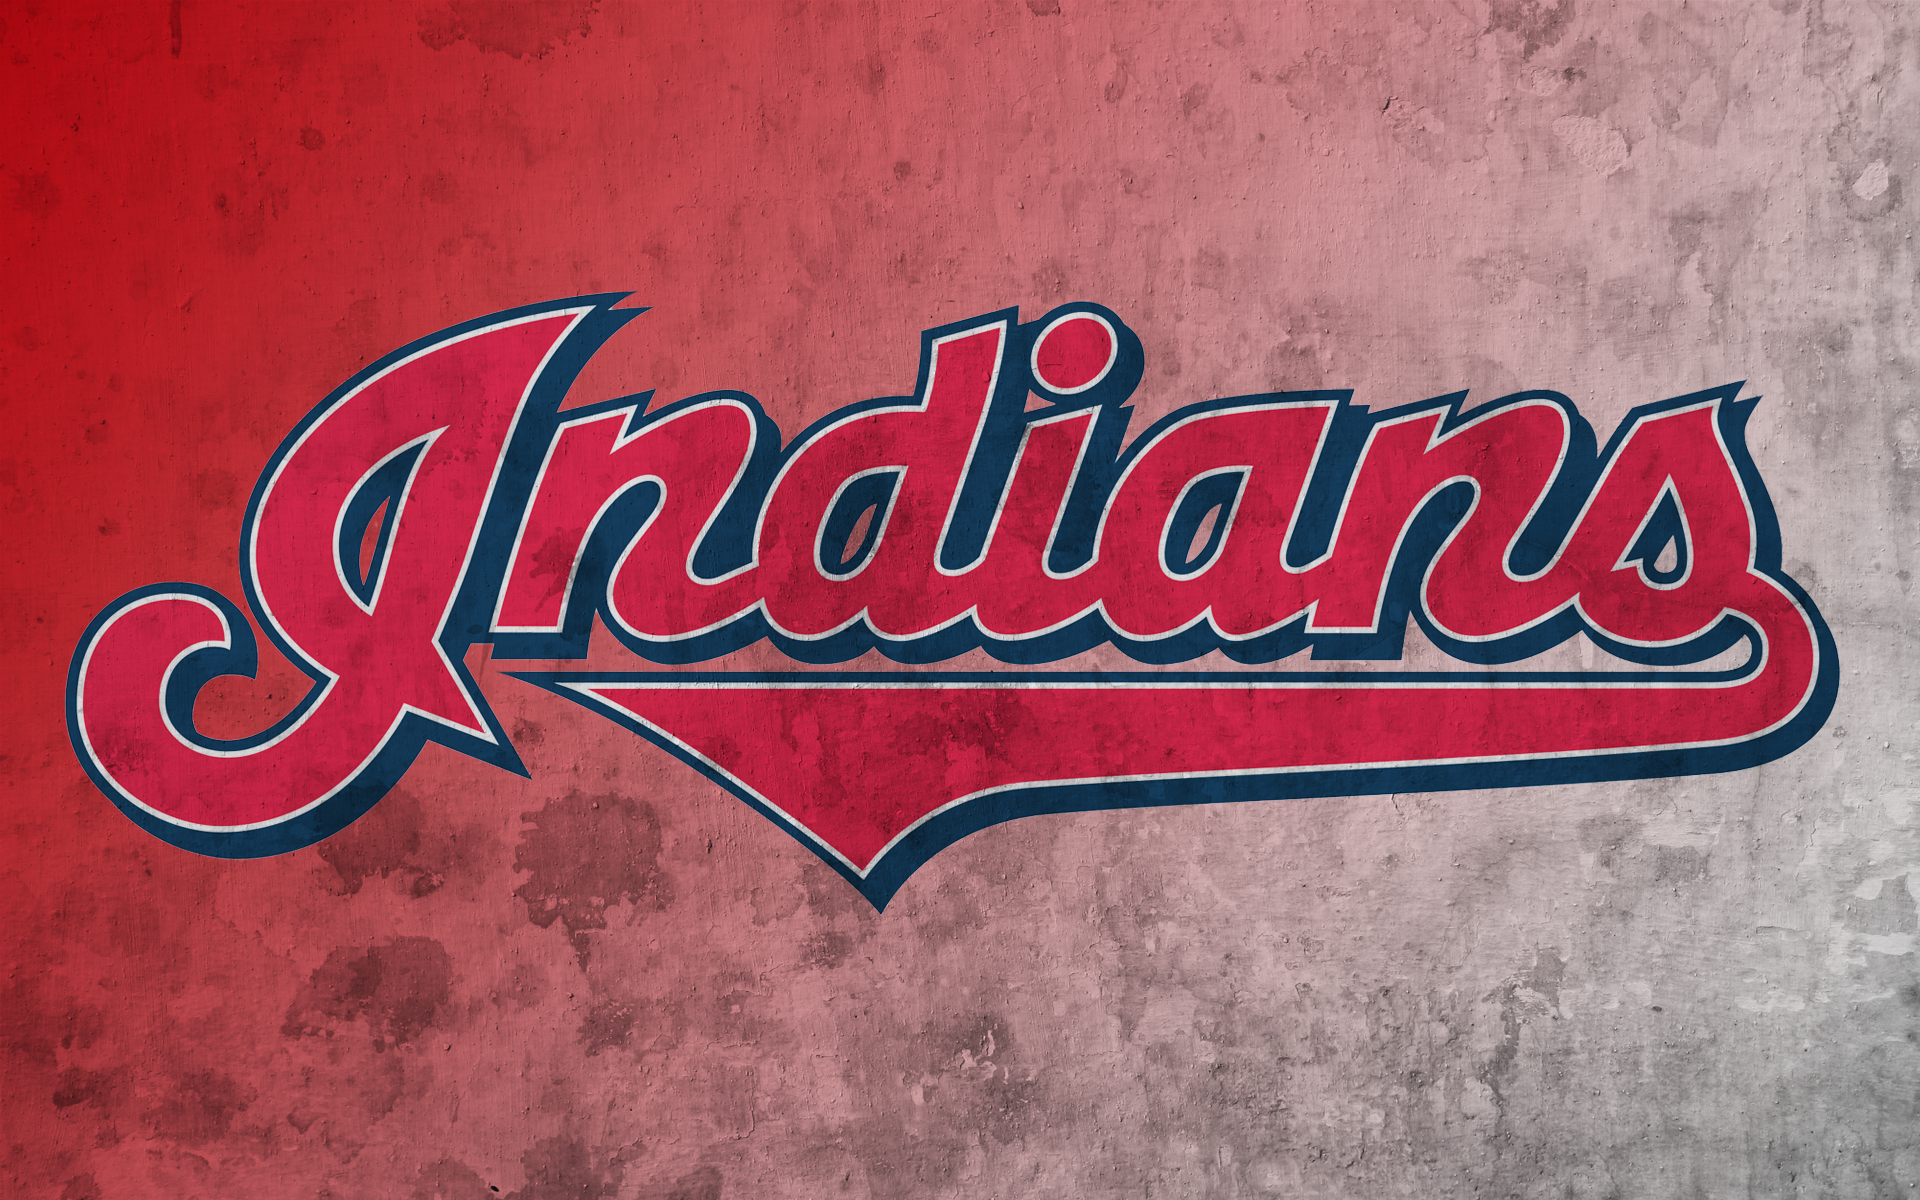 1920x1200 - Cleveland Indians Wallpapers 10